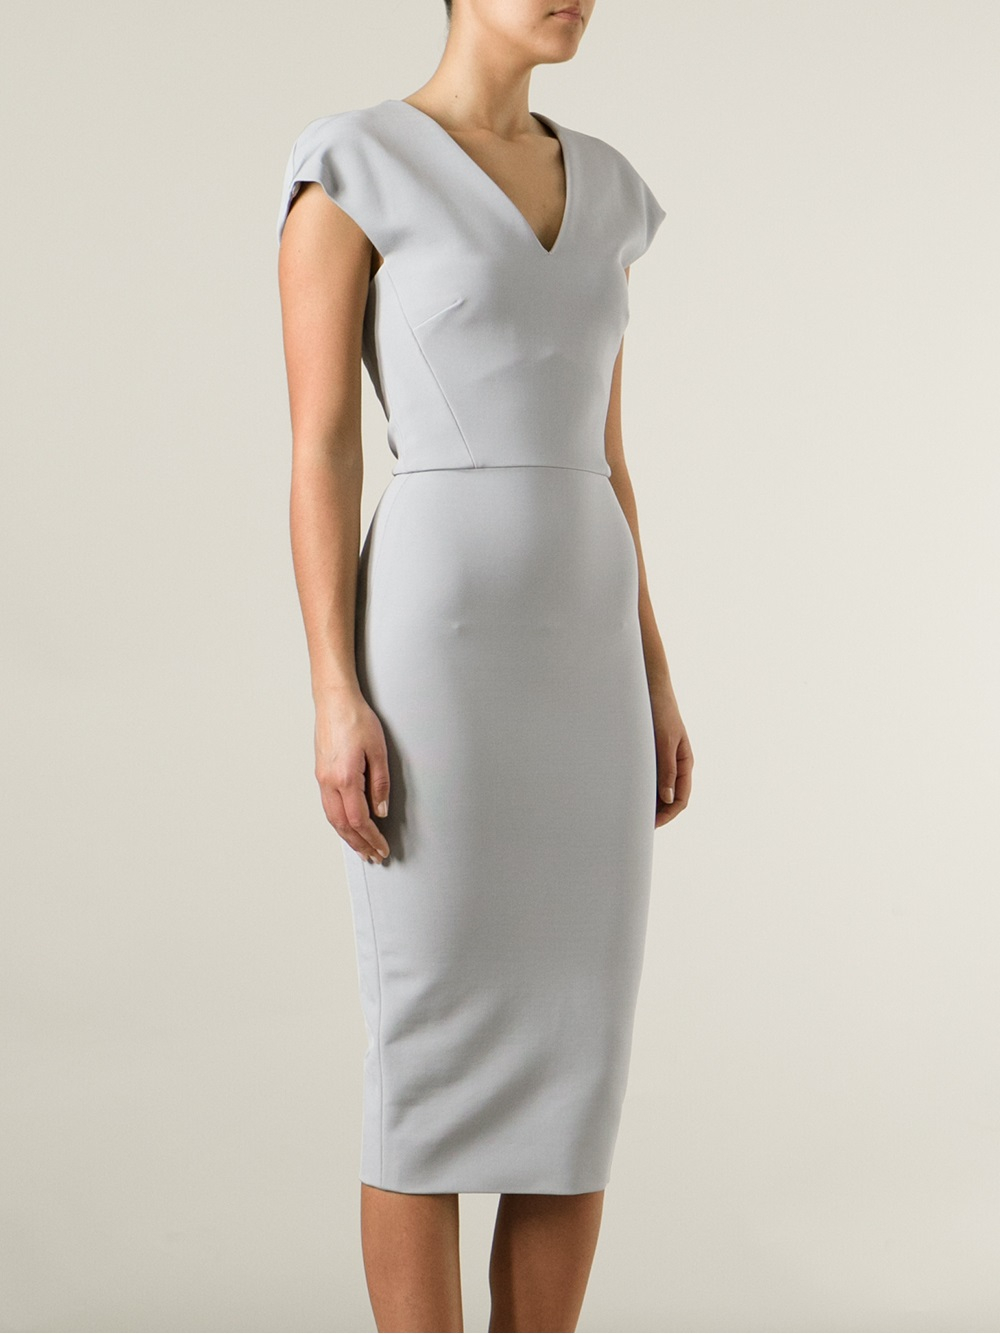 Victoria Beckham Fitted Pencil Dress In Gray Grey Lyst